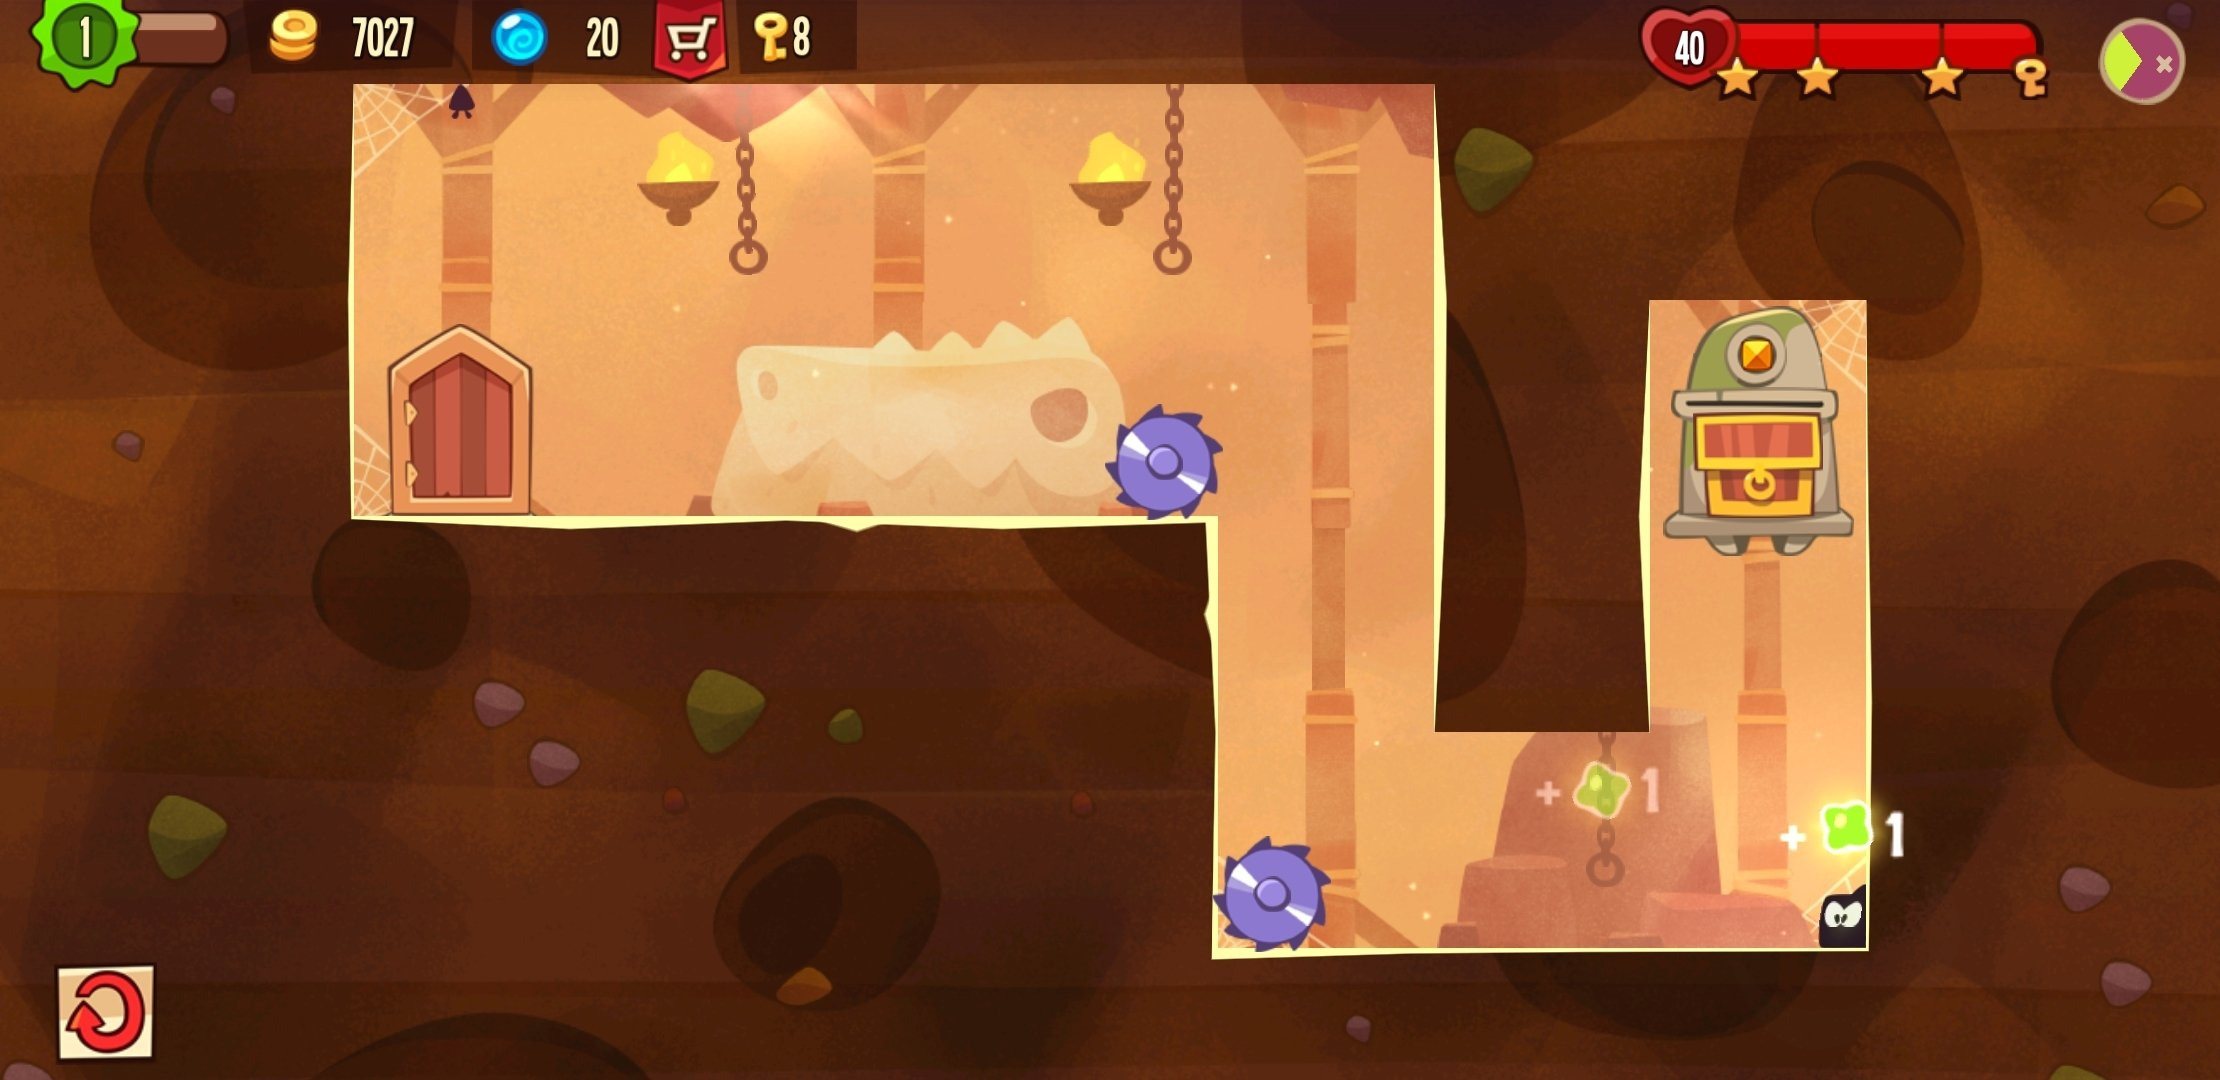 King of Thieves Android image 5